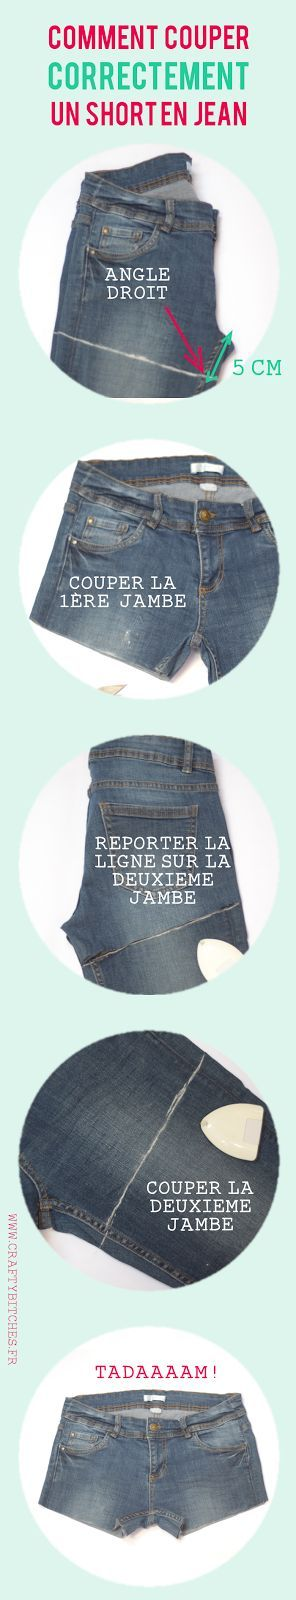 Crafty Bitches - Blog DIY, Couture, Déco, Vintage. Tuto couture, Do it yourself, décoration, rétro.: Comment couper un short en jean (sans faire de massacre):